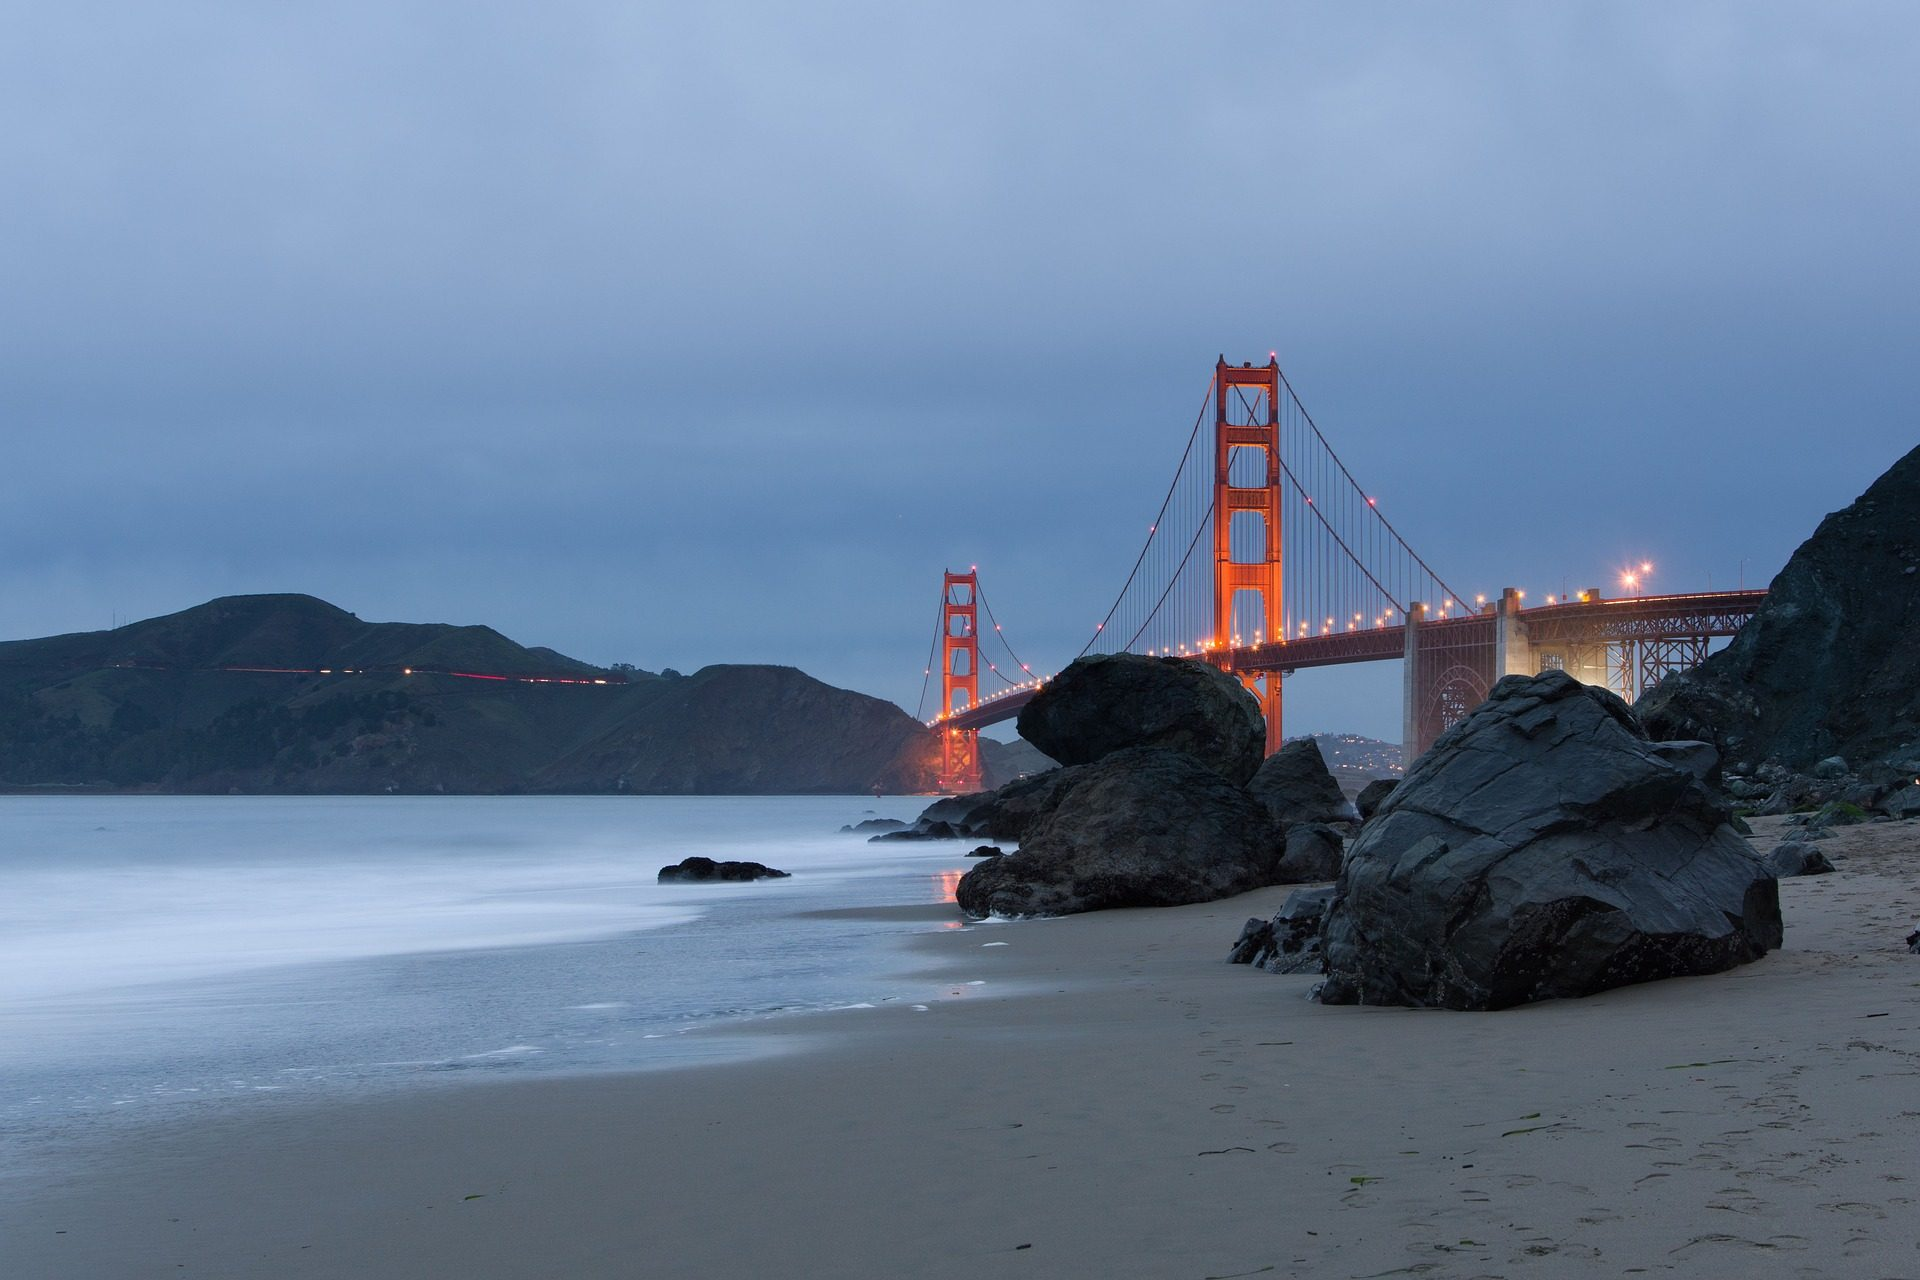 Brücke, Golden gate, Architektur, Meer, Ozean, Rocas, Costa, San francisco - Wallpaper HD - Prof.-falken.com